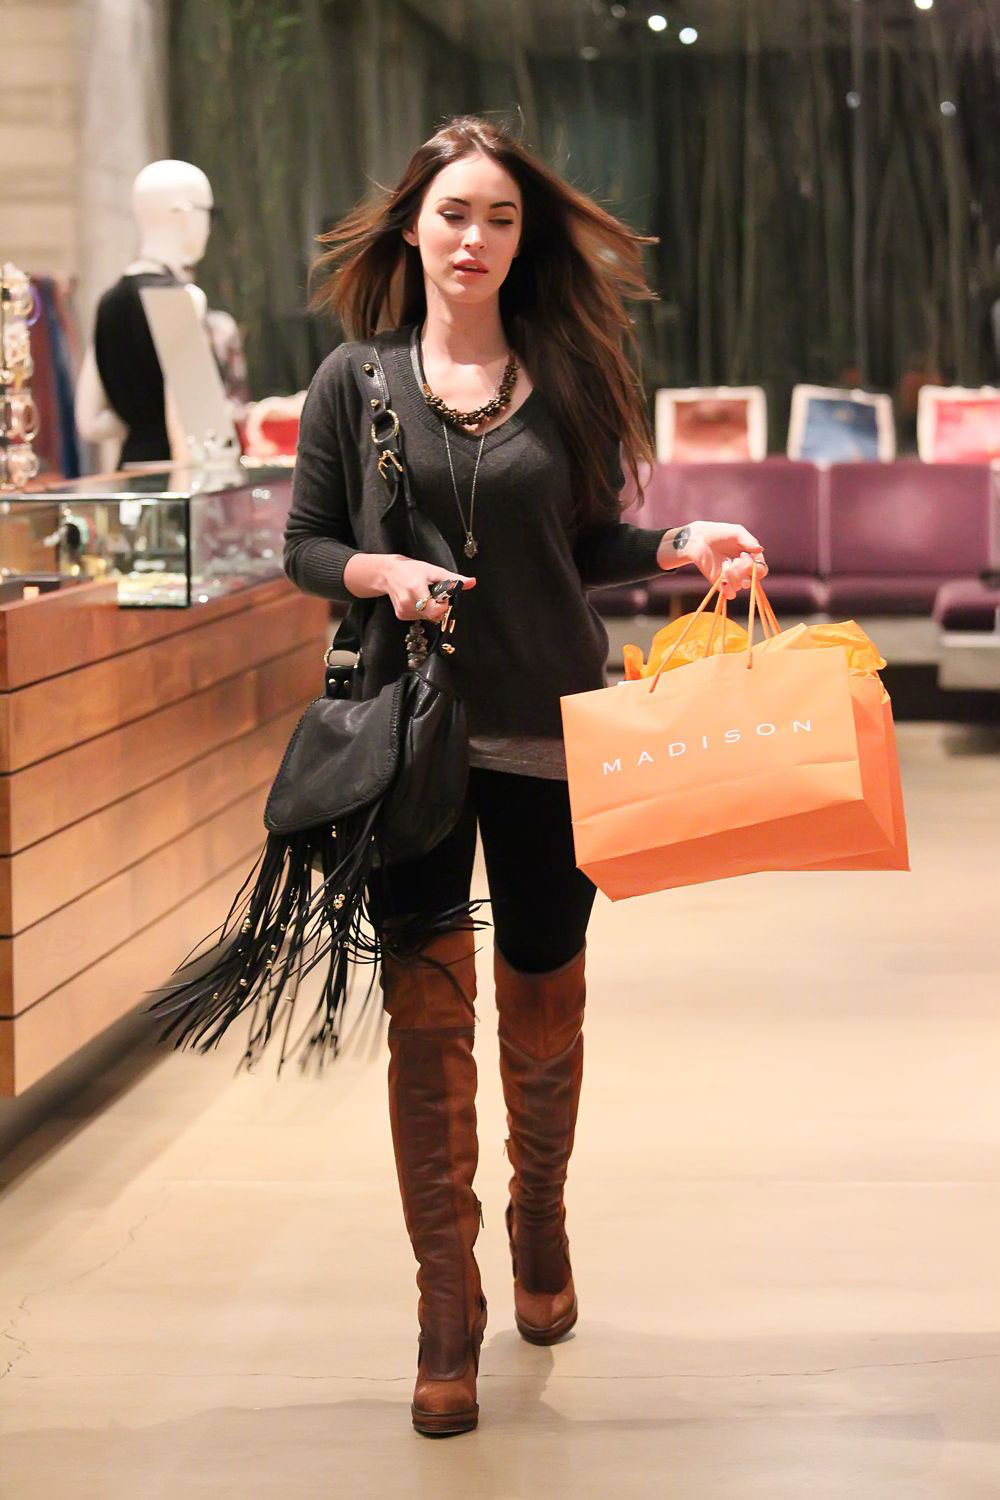 http://www.hawtcelebs.com/wp-content/uploads/2011/12/Megan-Fox-in-Knee-Boots-Shopping-at-Madison-6.jpg